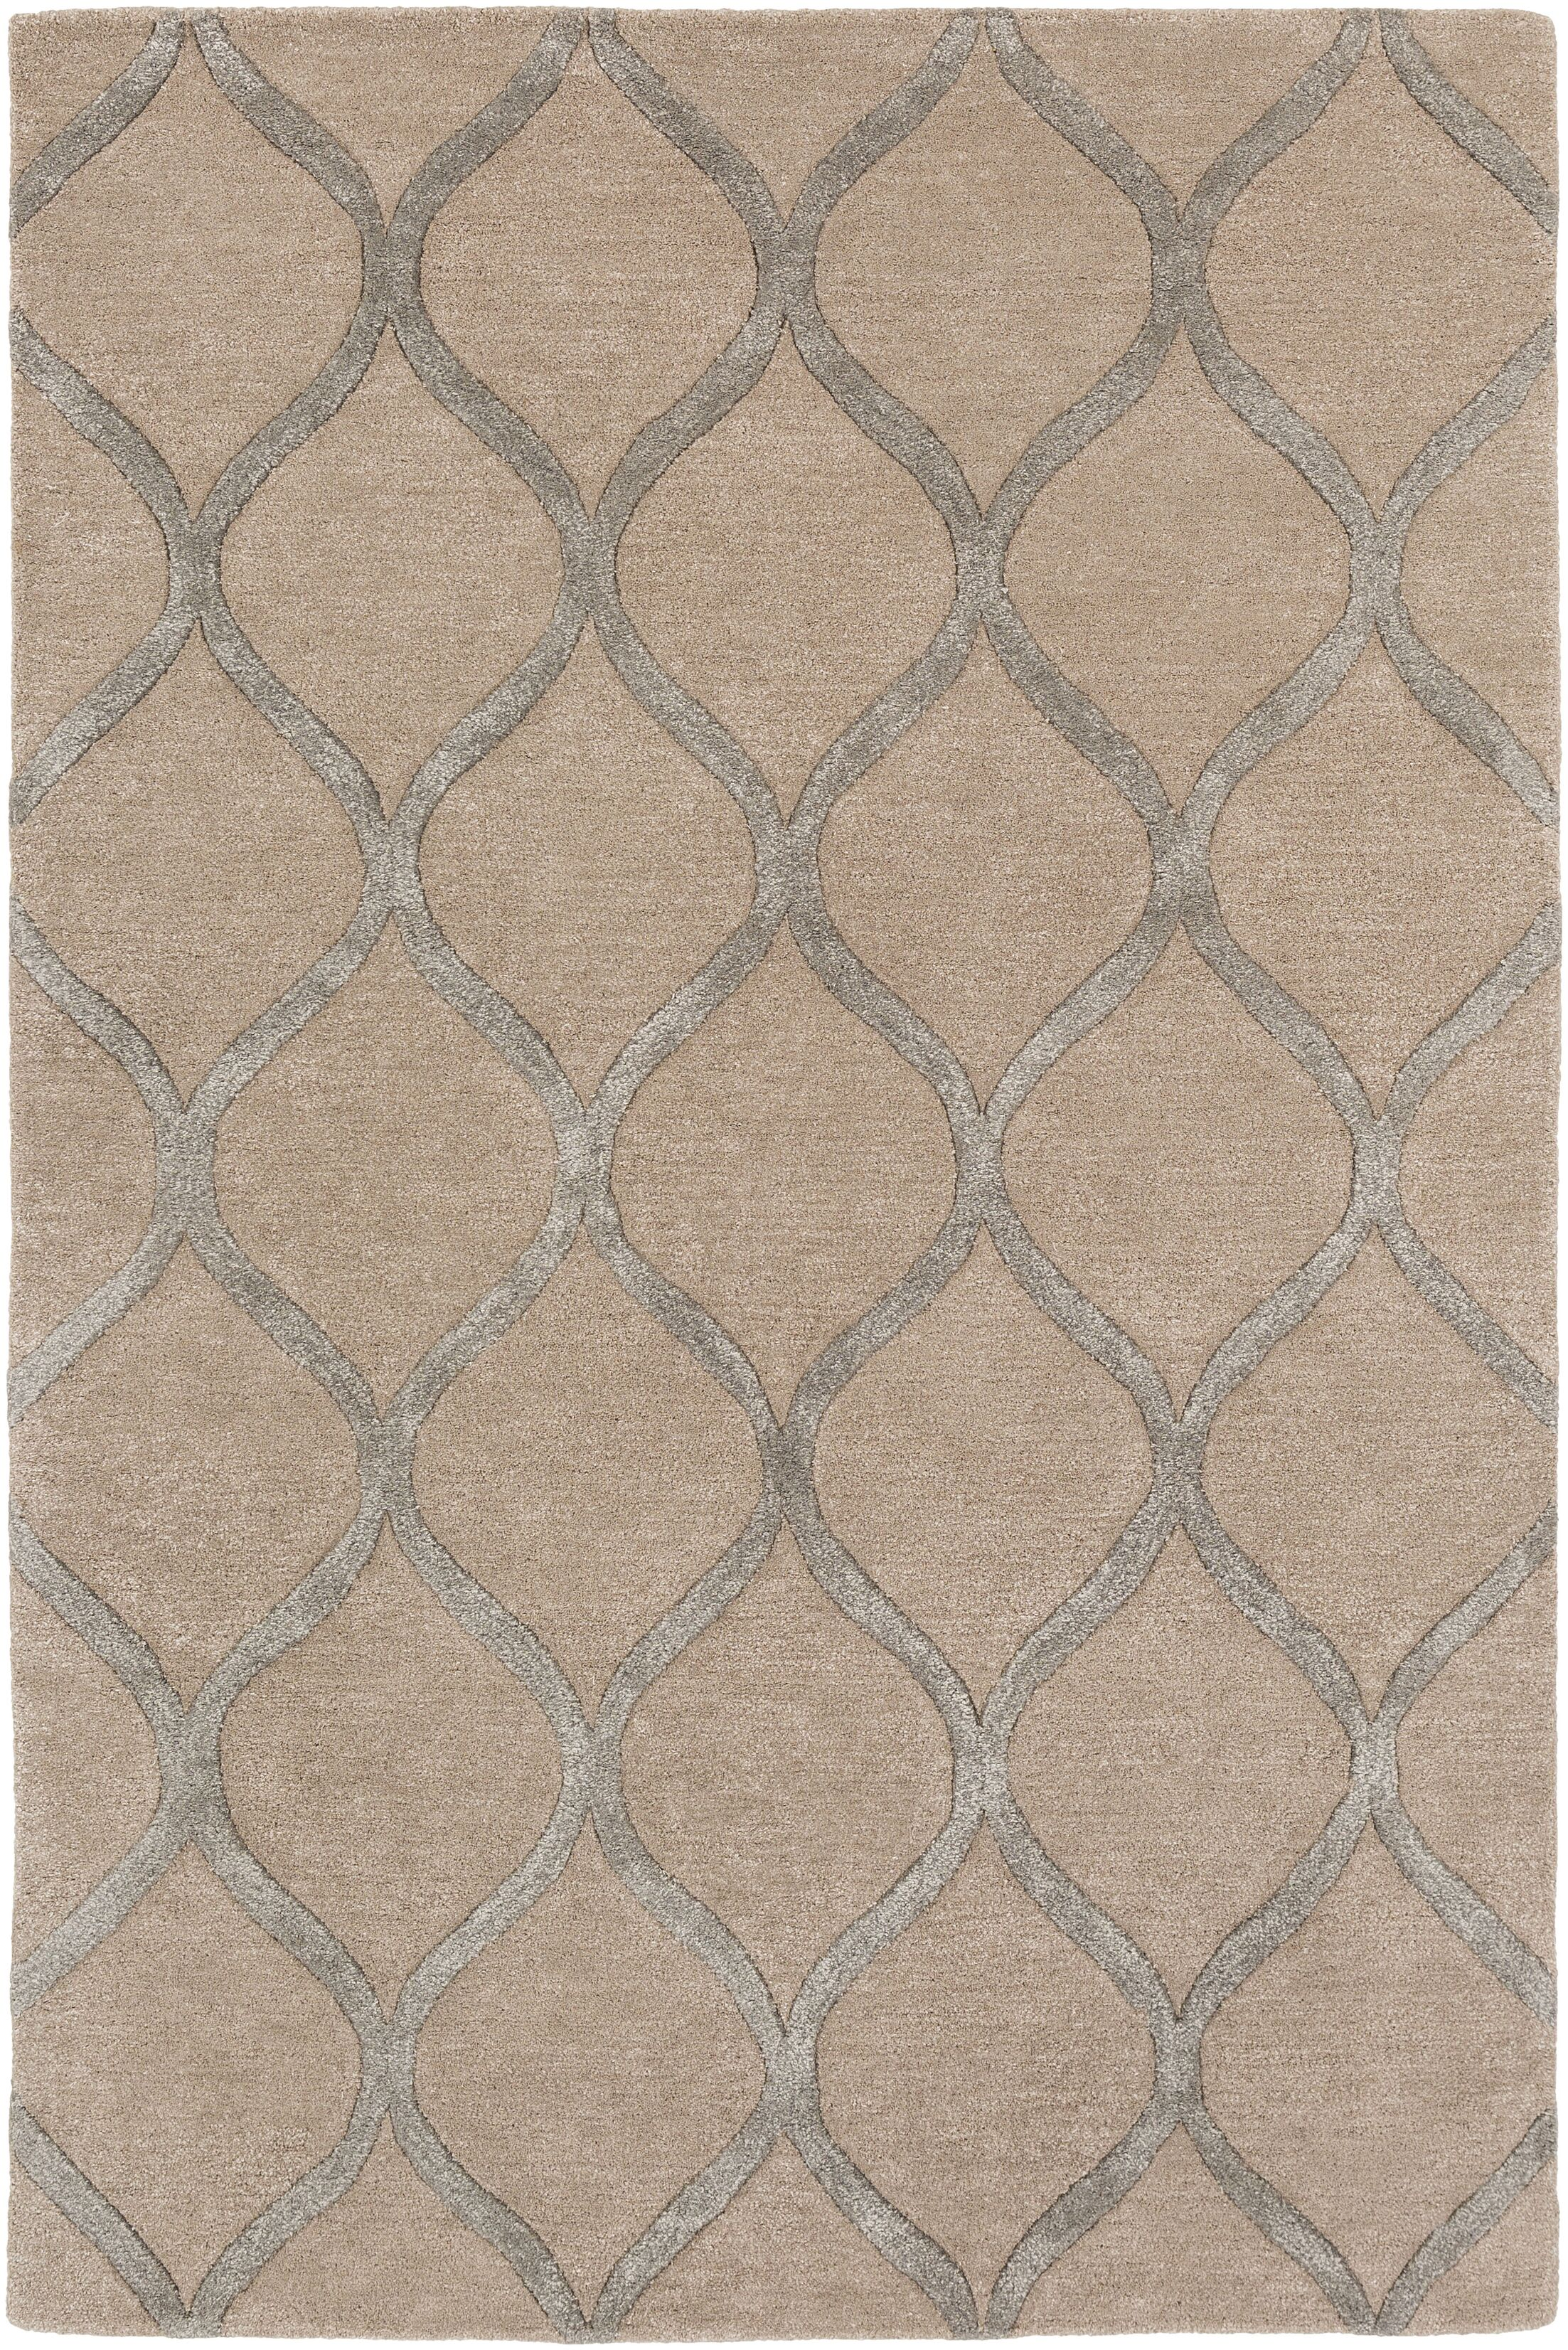 Bronaugh Modern Hand-Tufted Brown Area Rug Rug Size: Rectangle 7'6